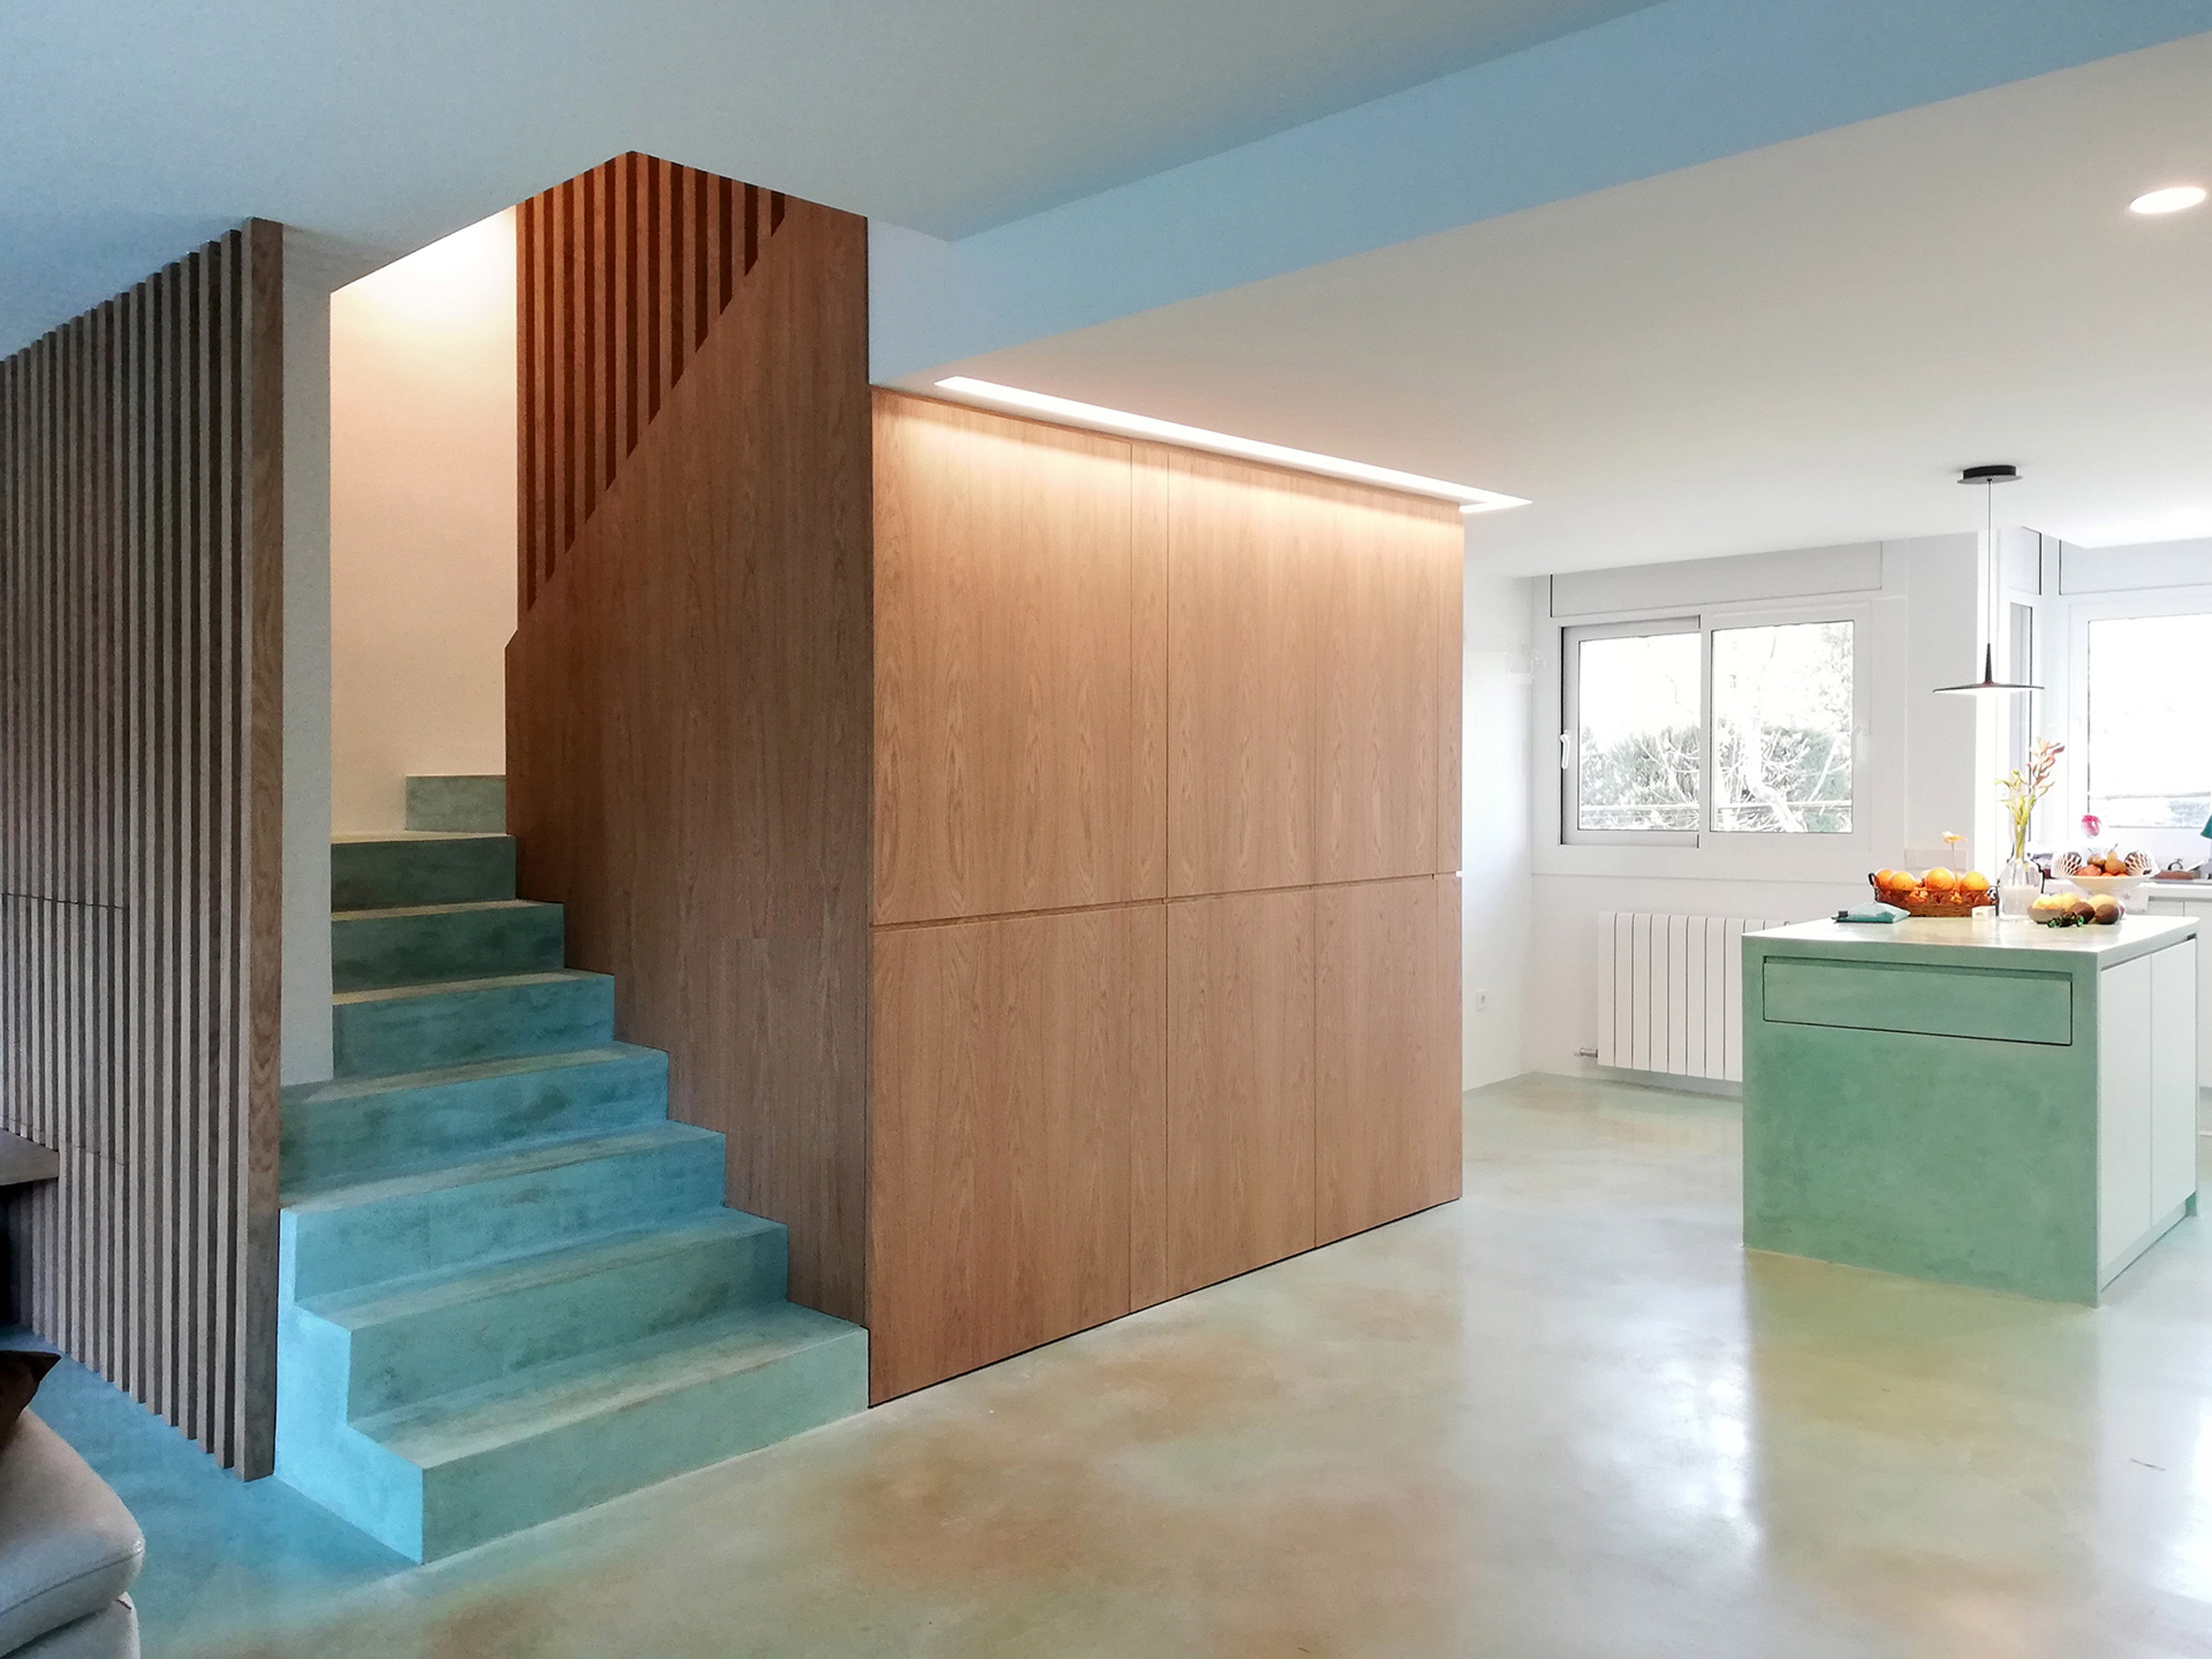 Acid Stain flooring by Ideal Work